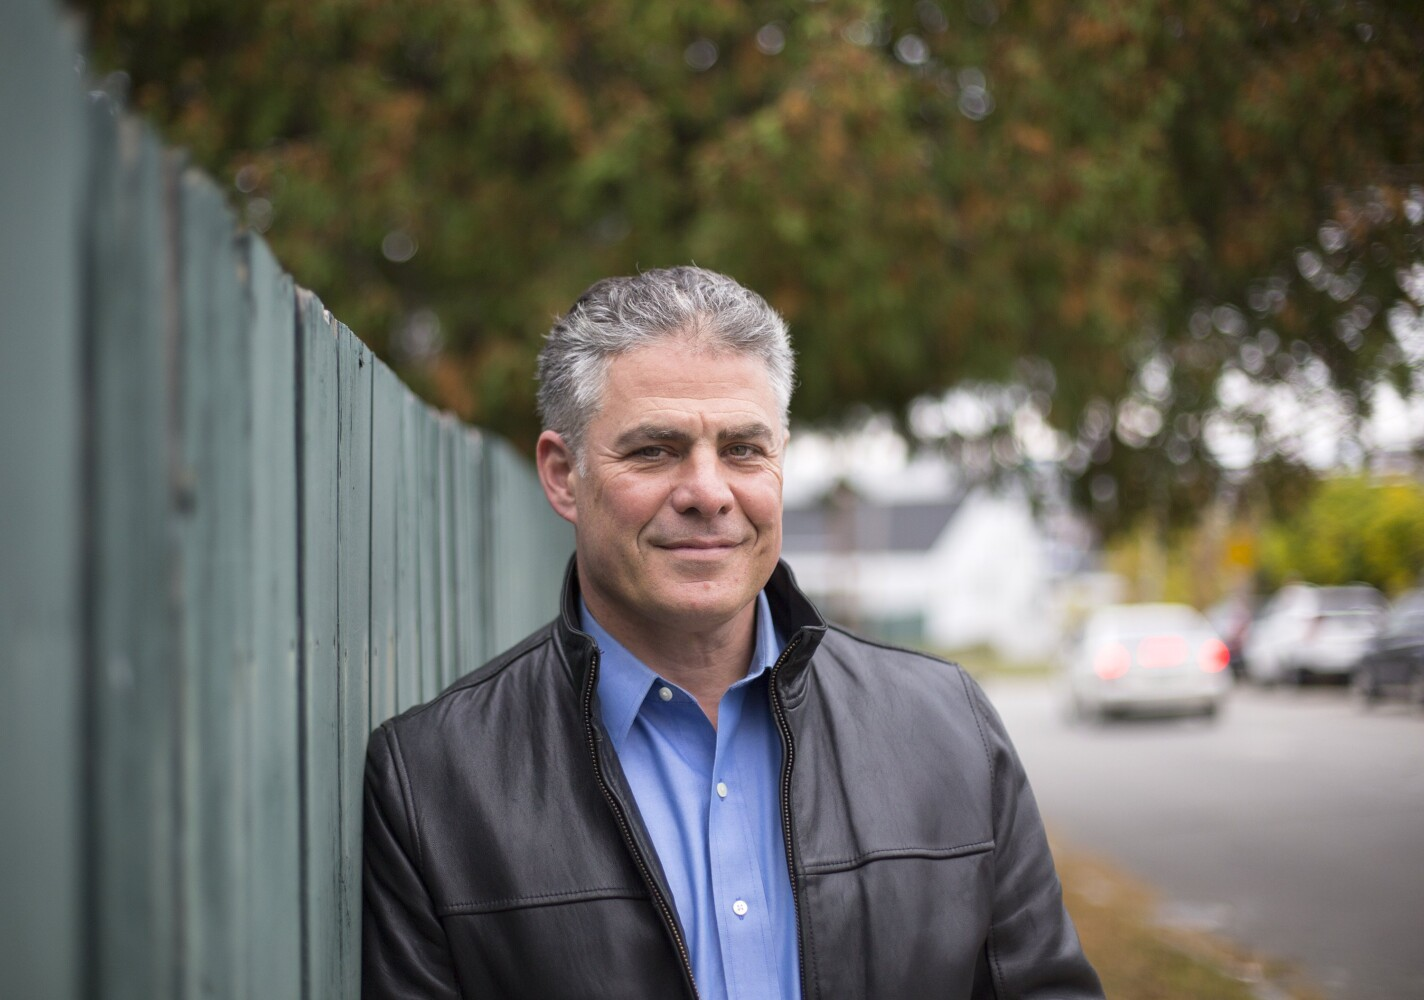 Most ethics complaints from Portland's bruising mayoral race are dropped - Portland Press Herald